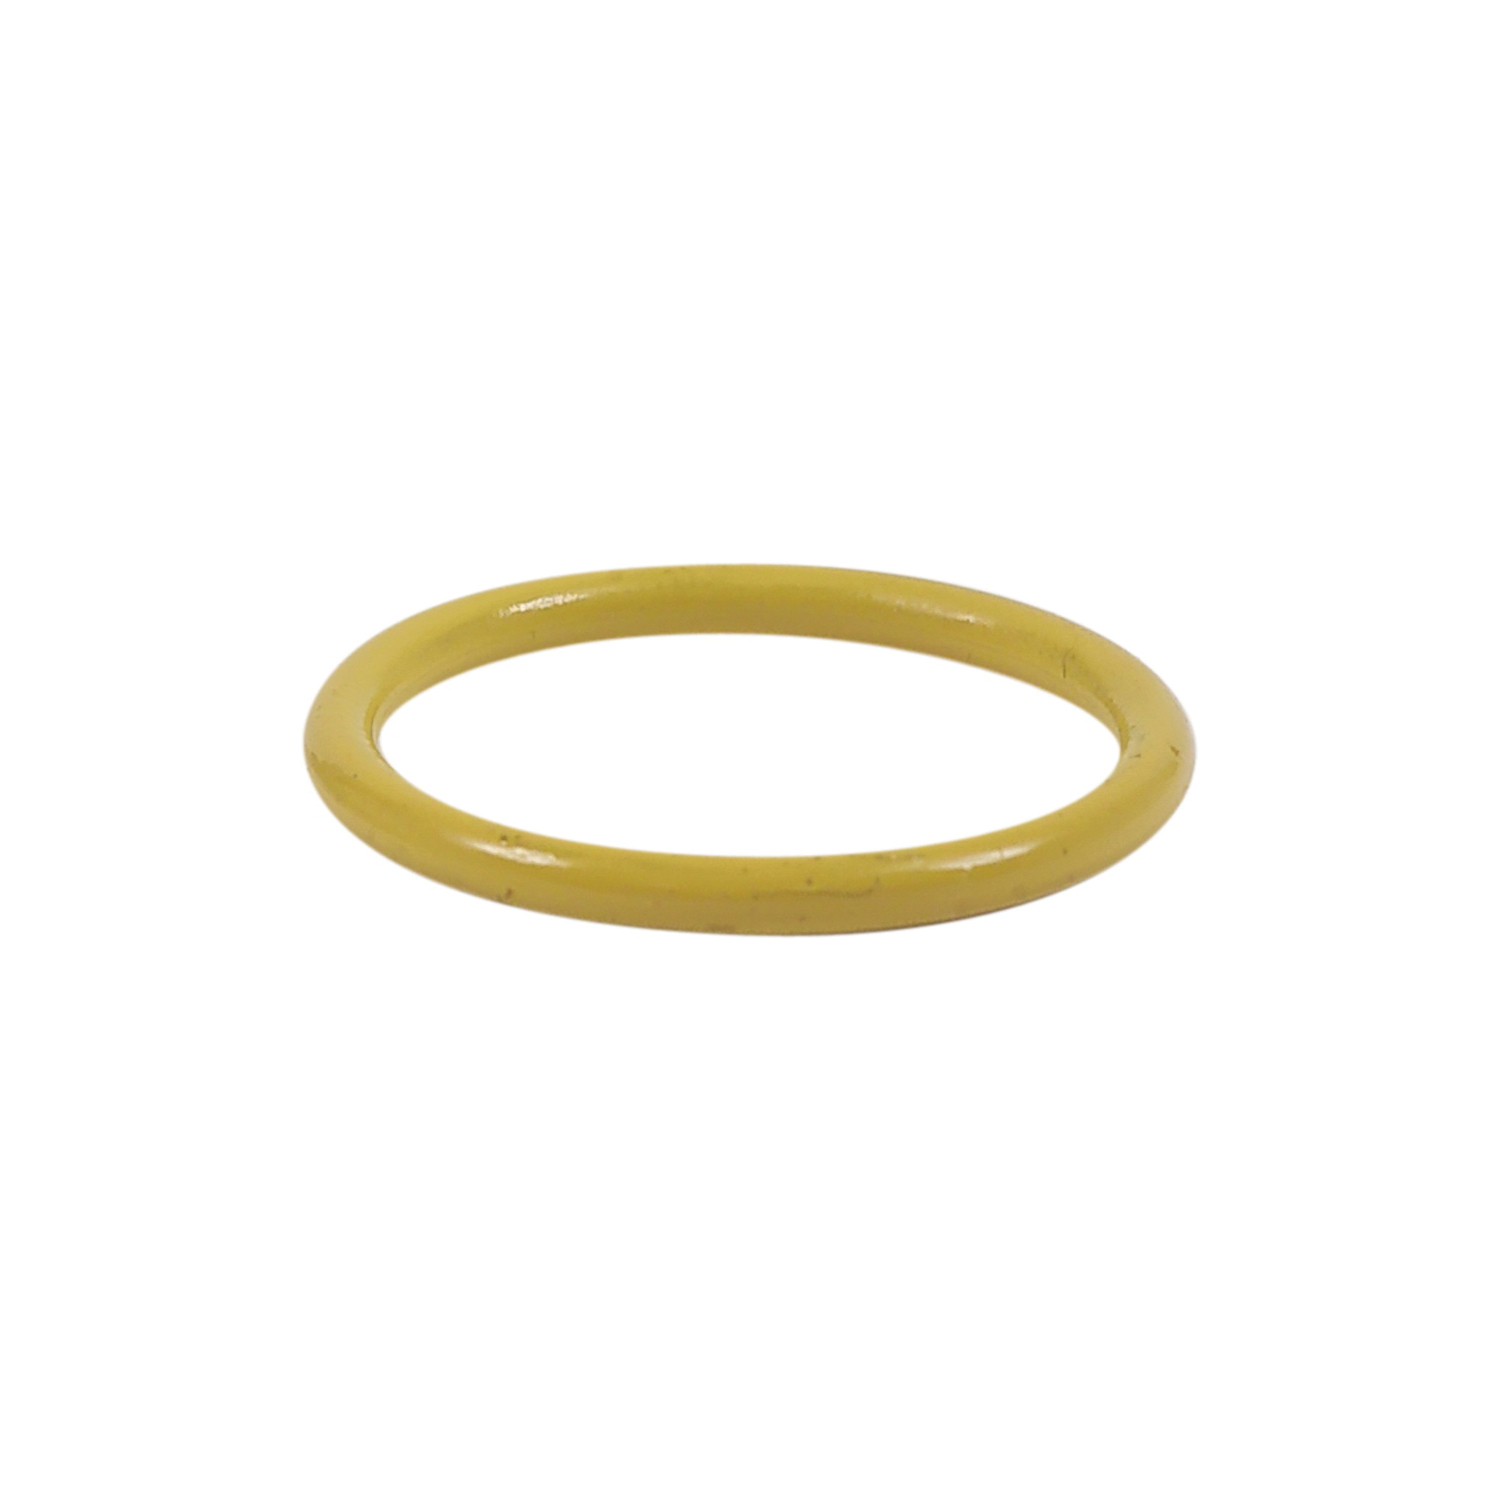 ProPress®G 21033 Sealing Element, For Use With Viega ProPress CTS Fitting, 1 in, HNBR, Yellow, Import